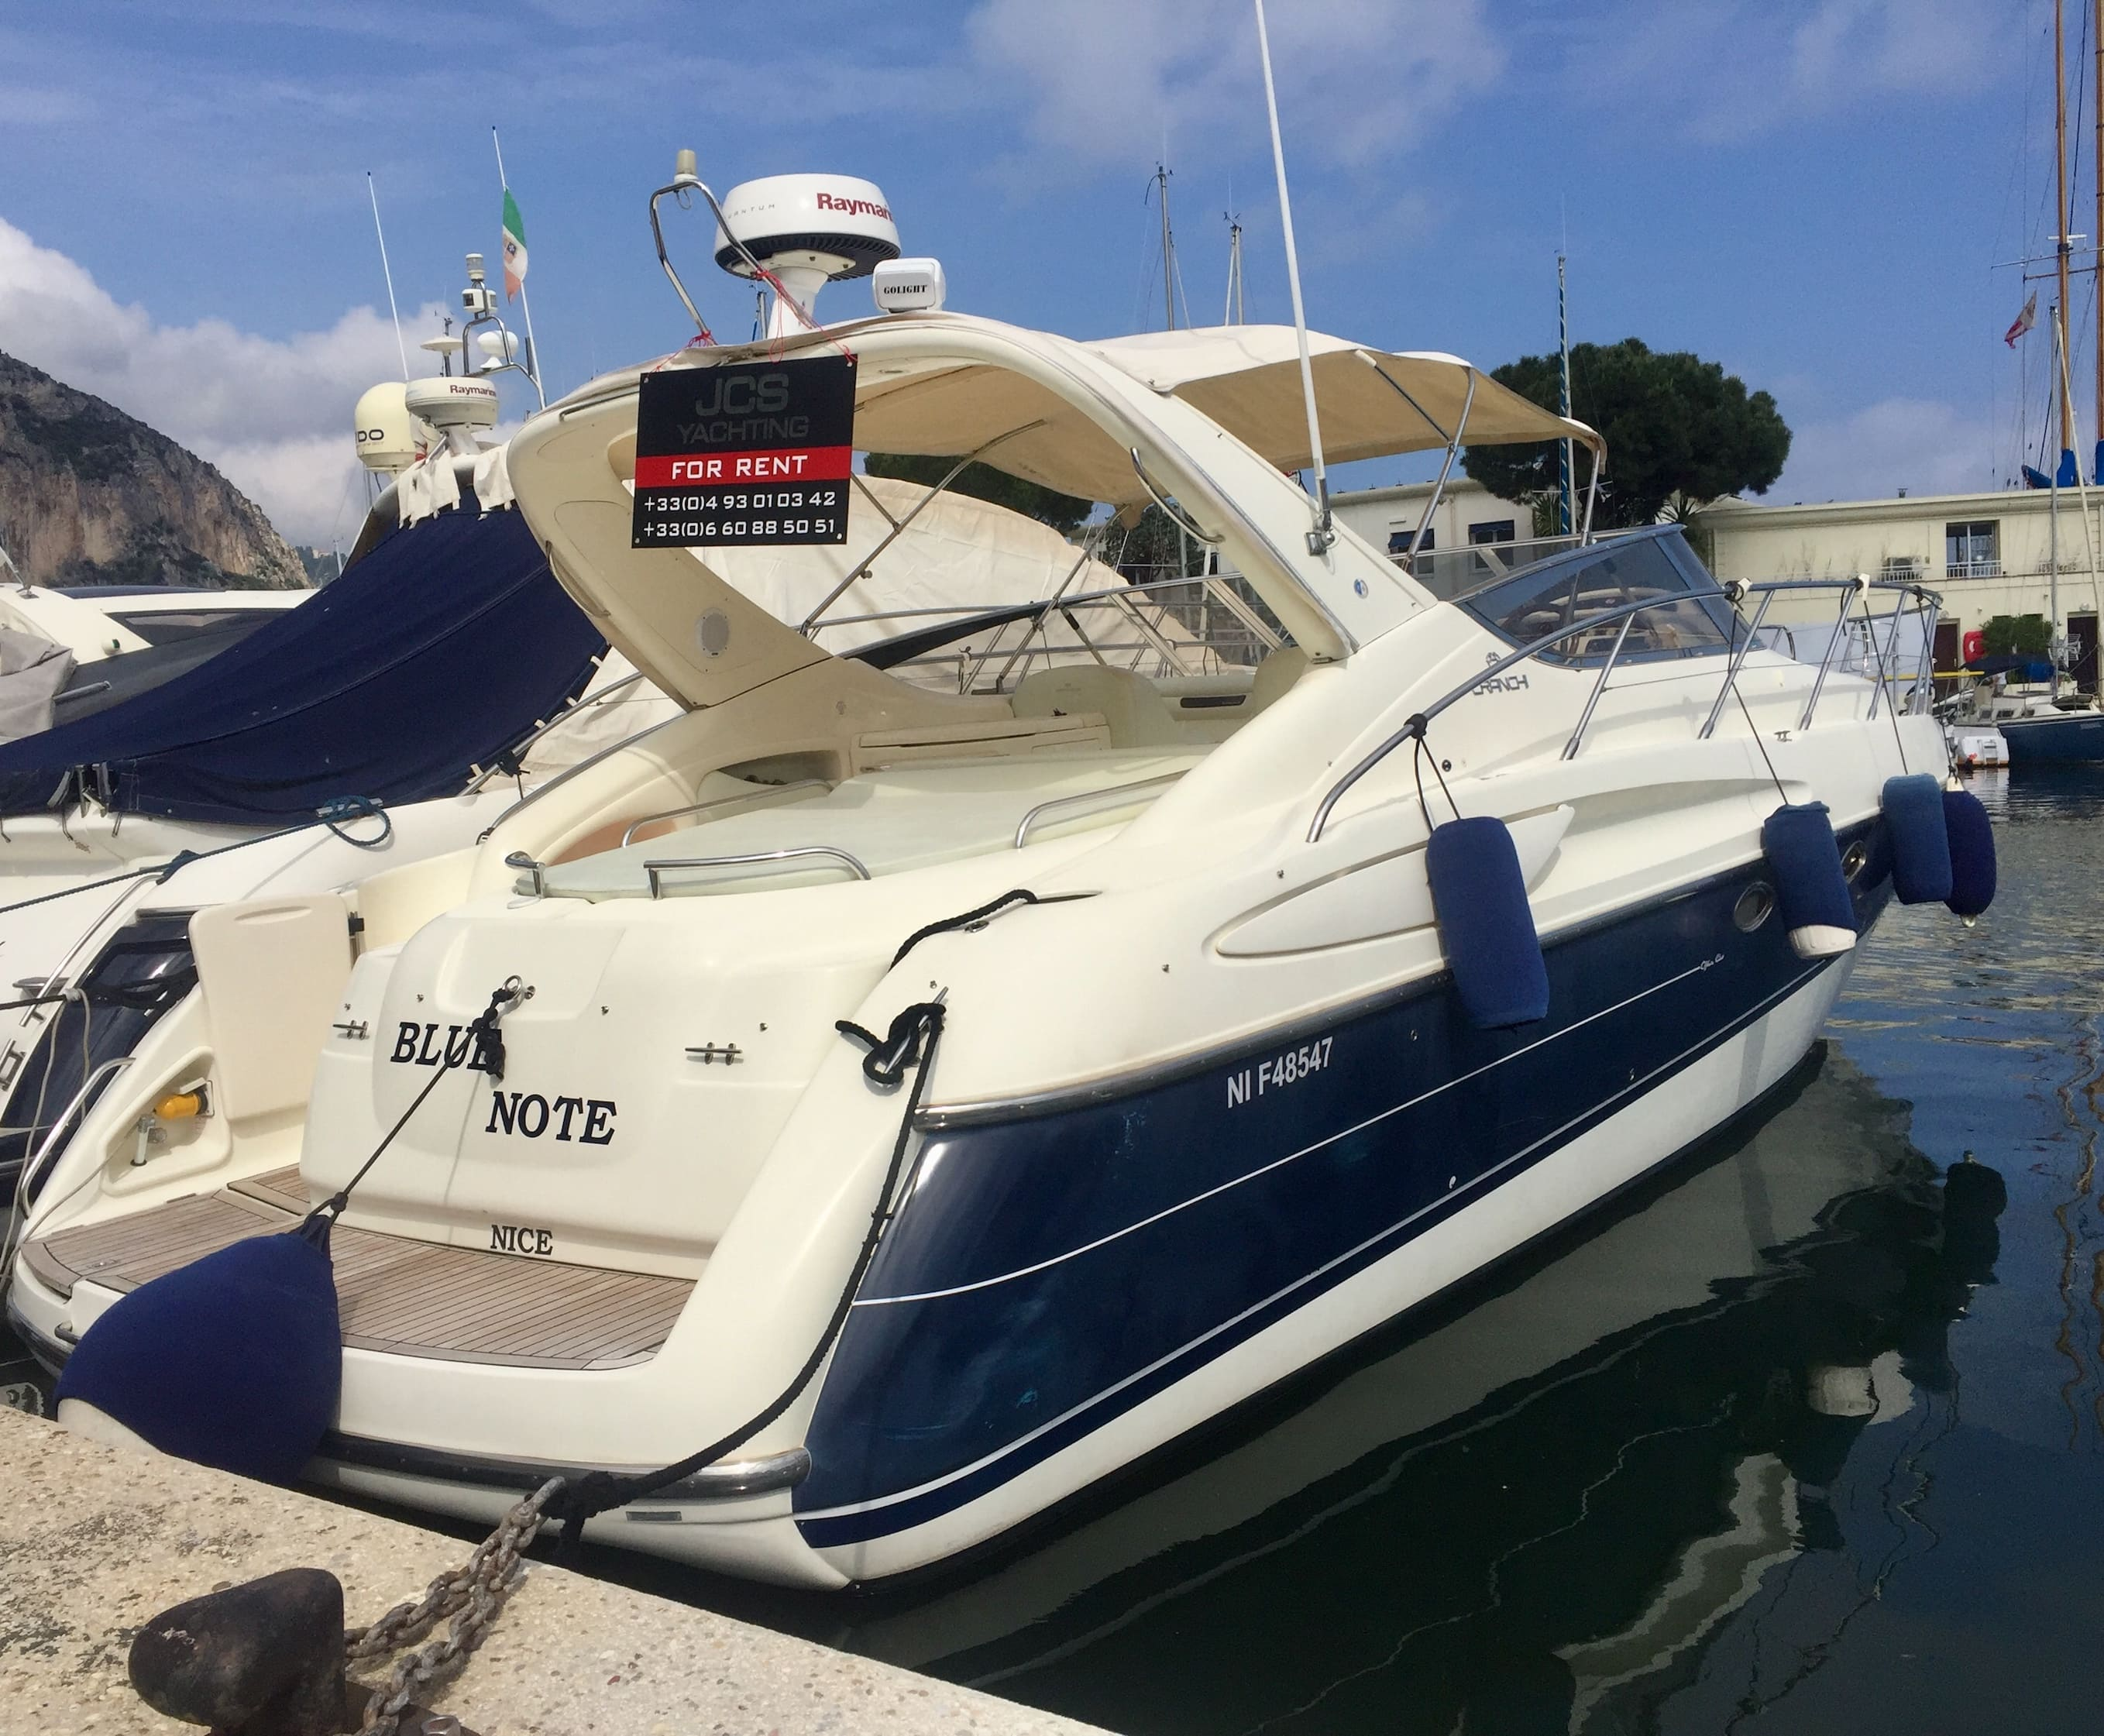 Boat rental - Nice à la carte up to 10 persons